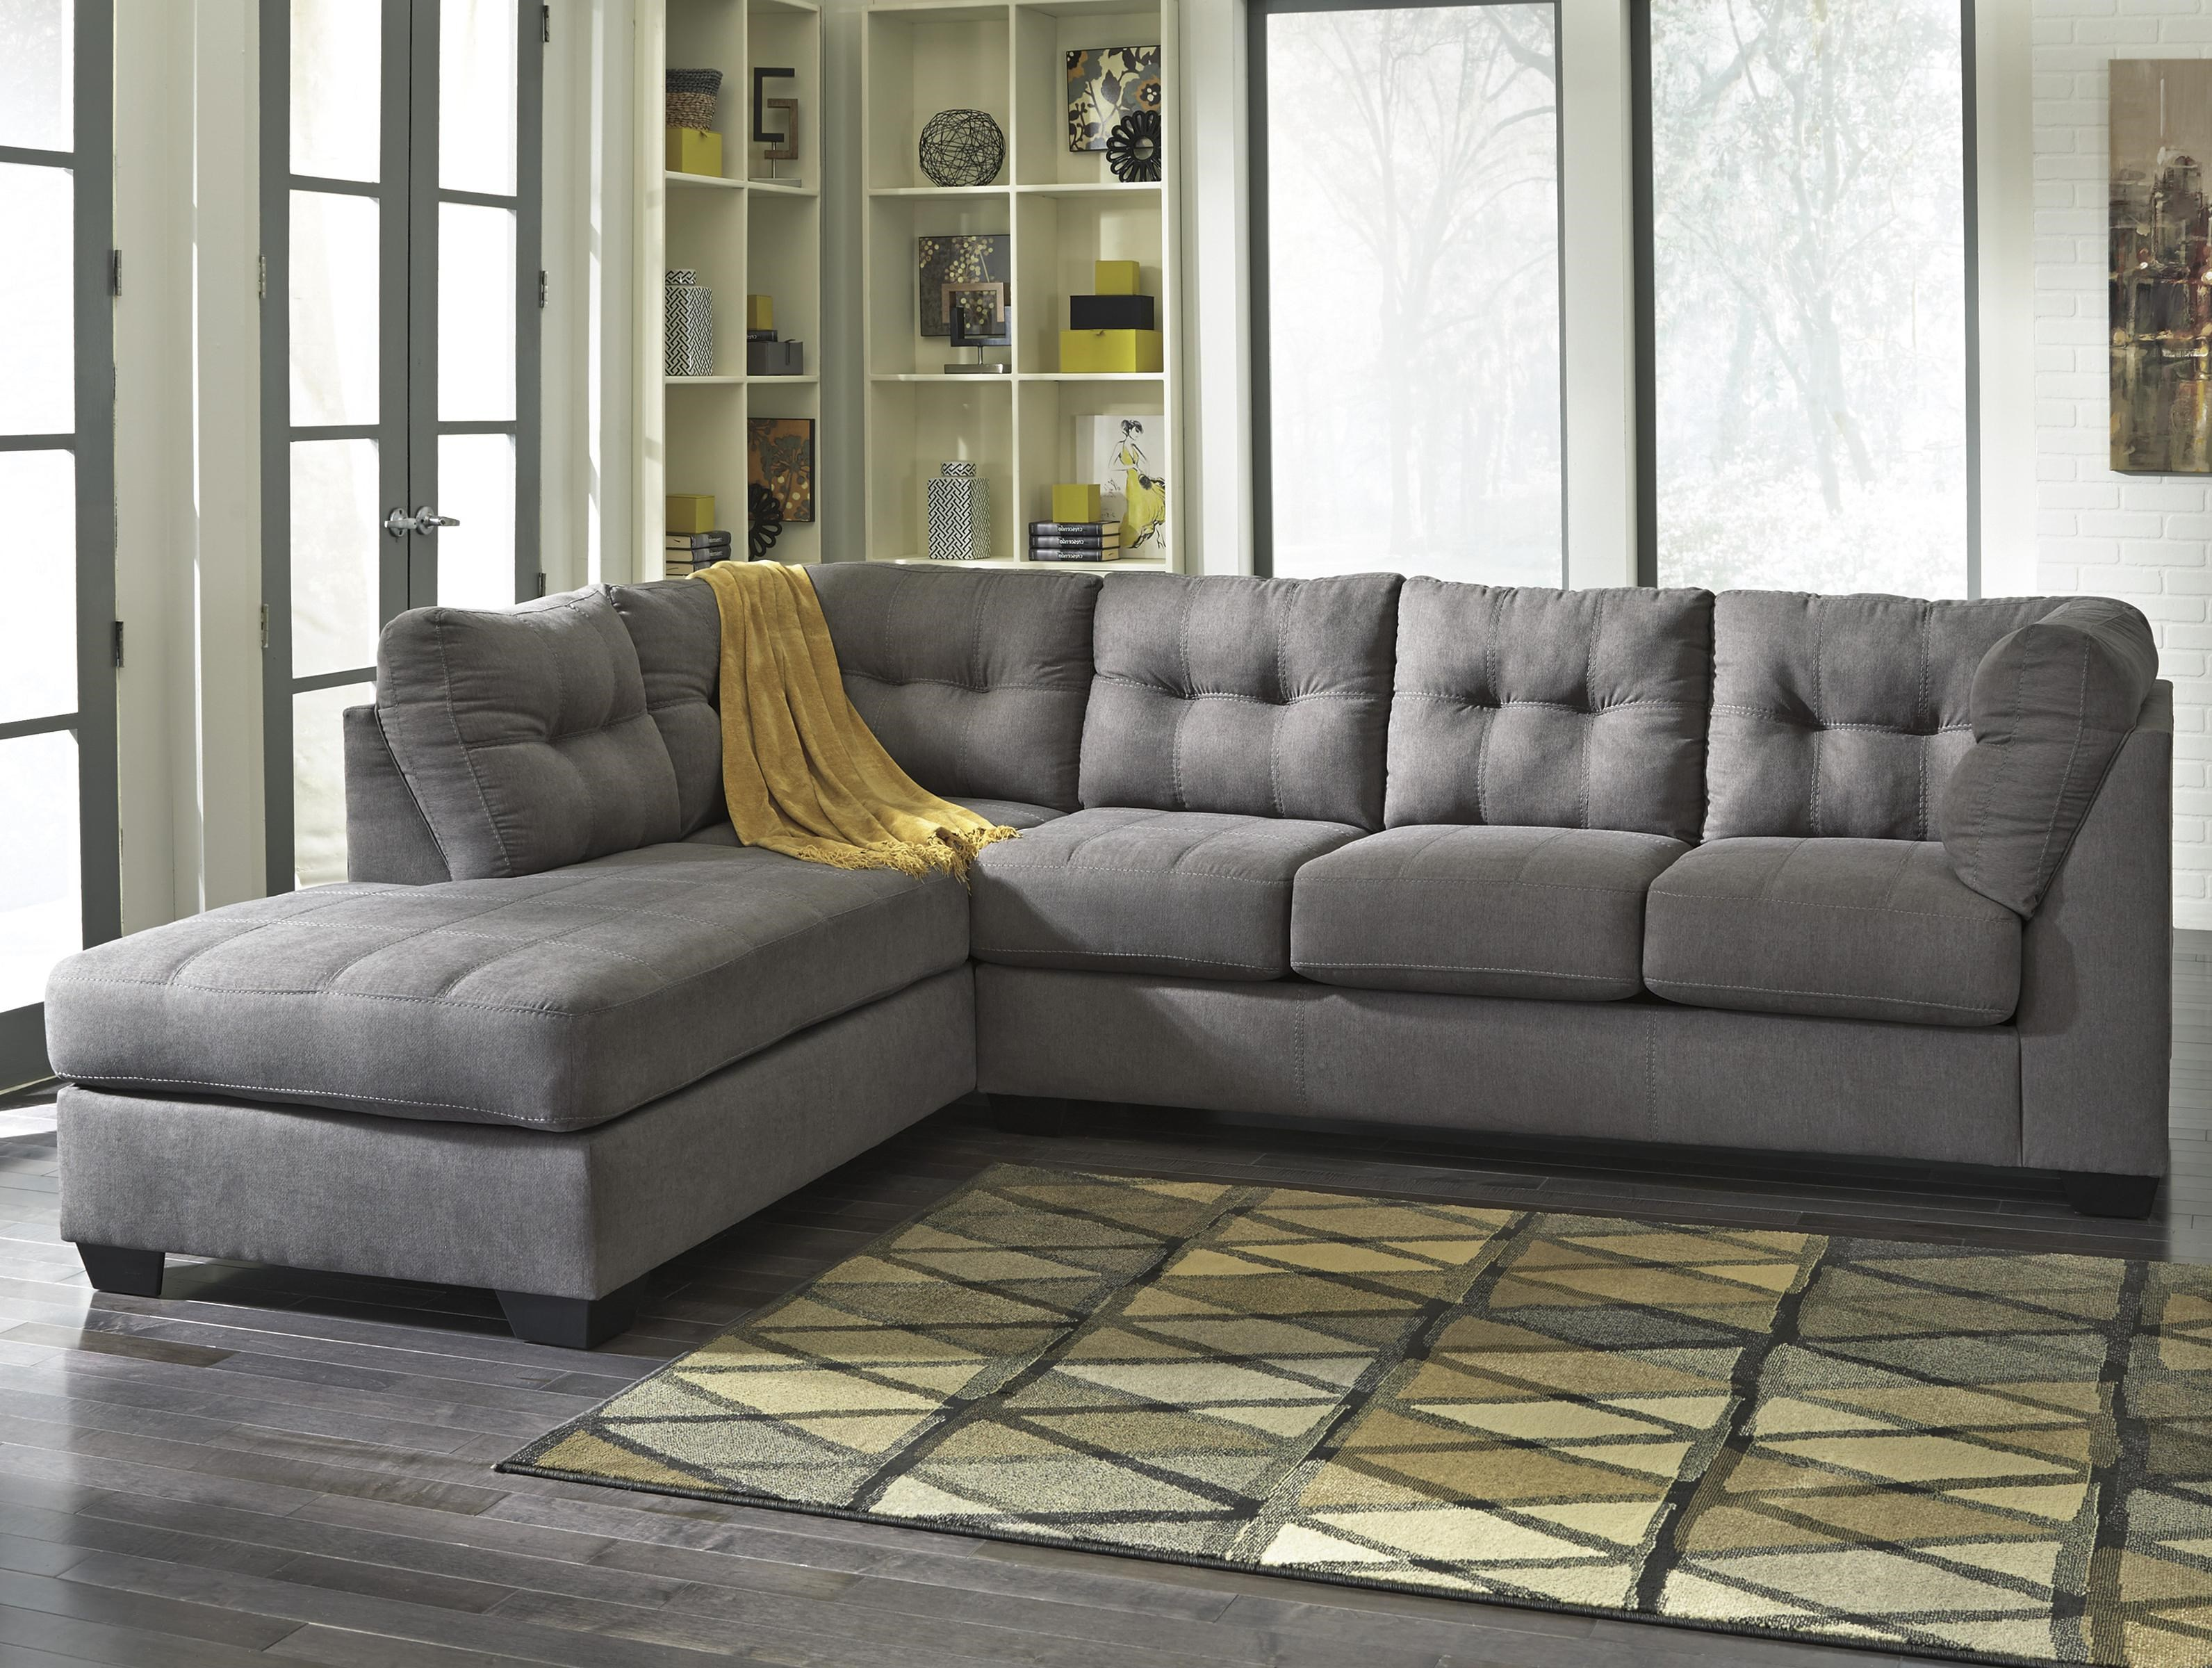 - Benchcraft Maier - Charcoal 2-Piece Sectional W/ Sleeper Sofa